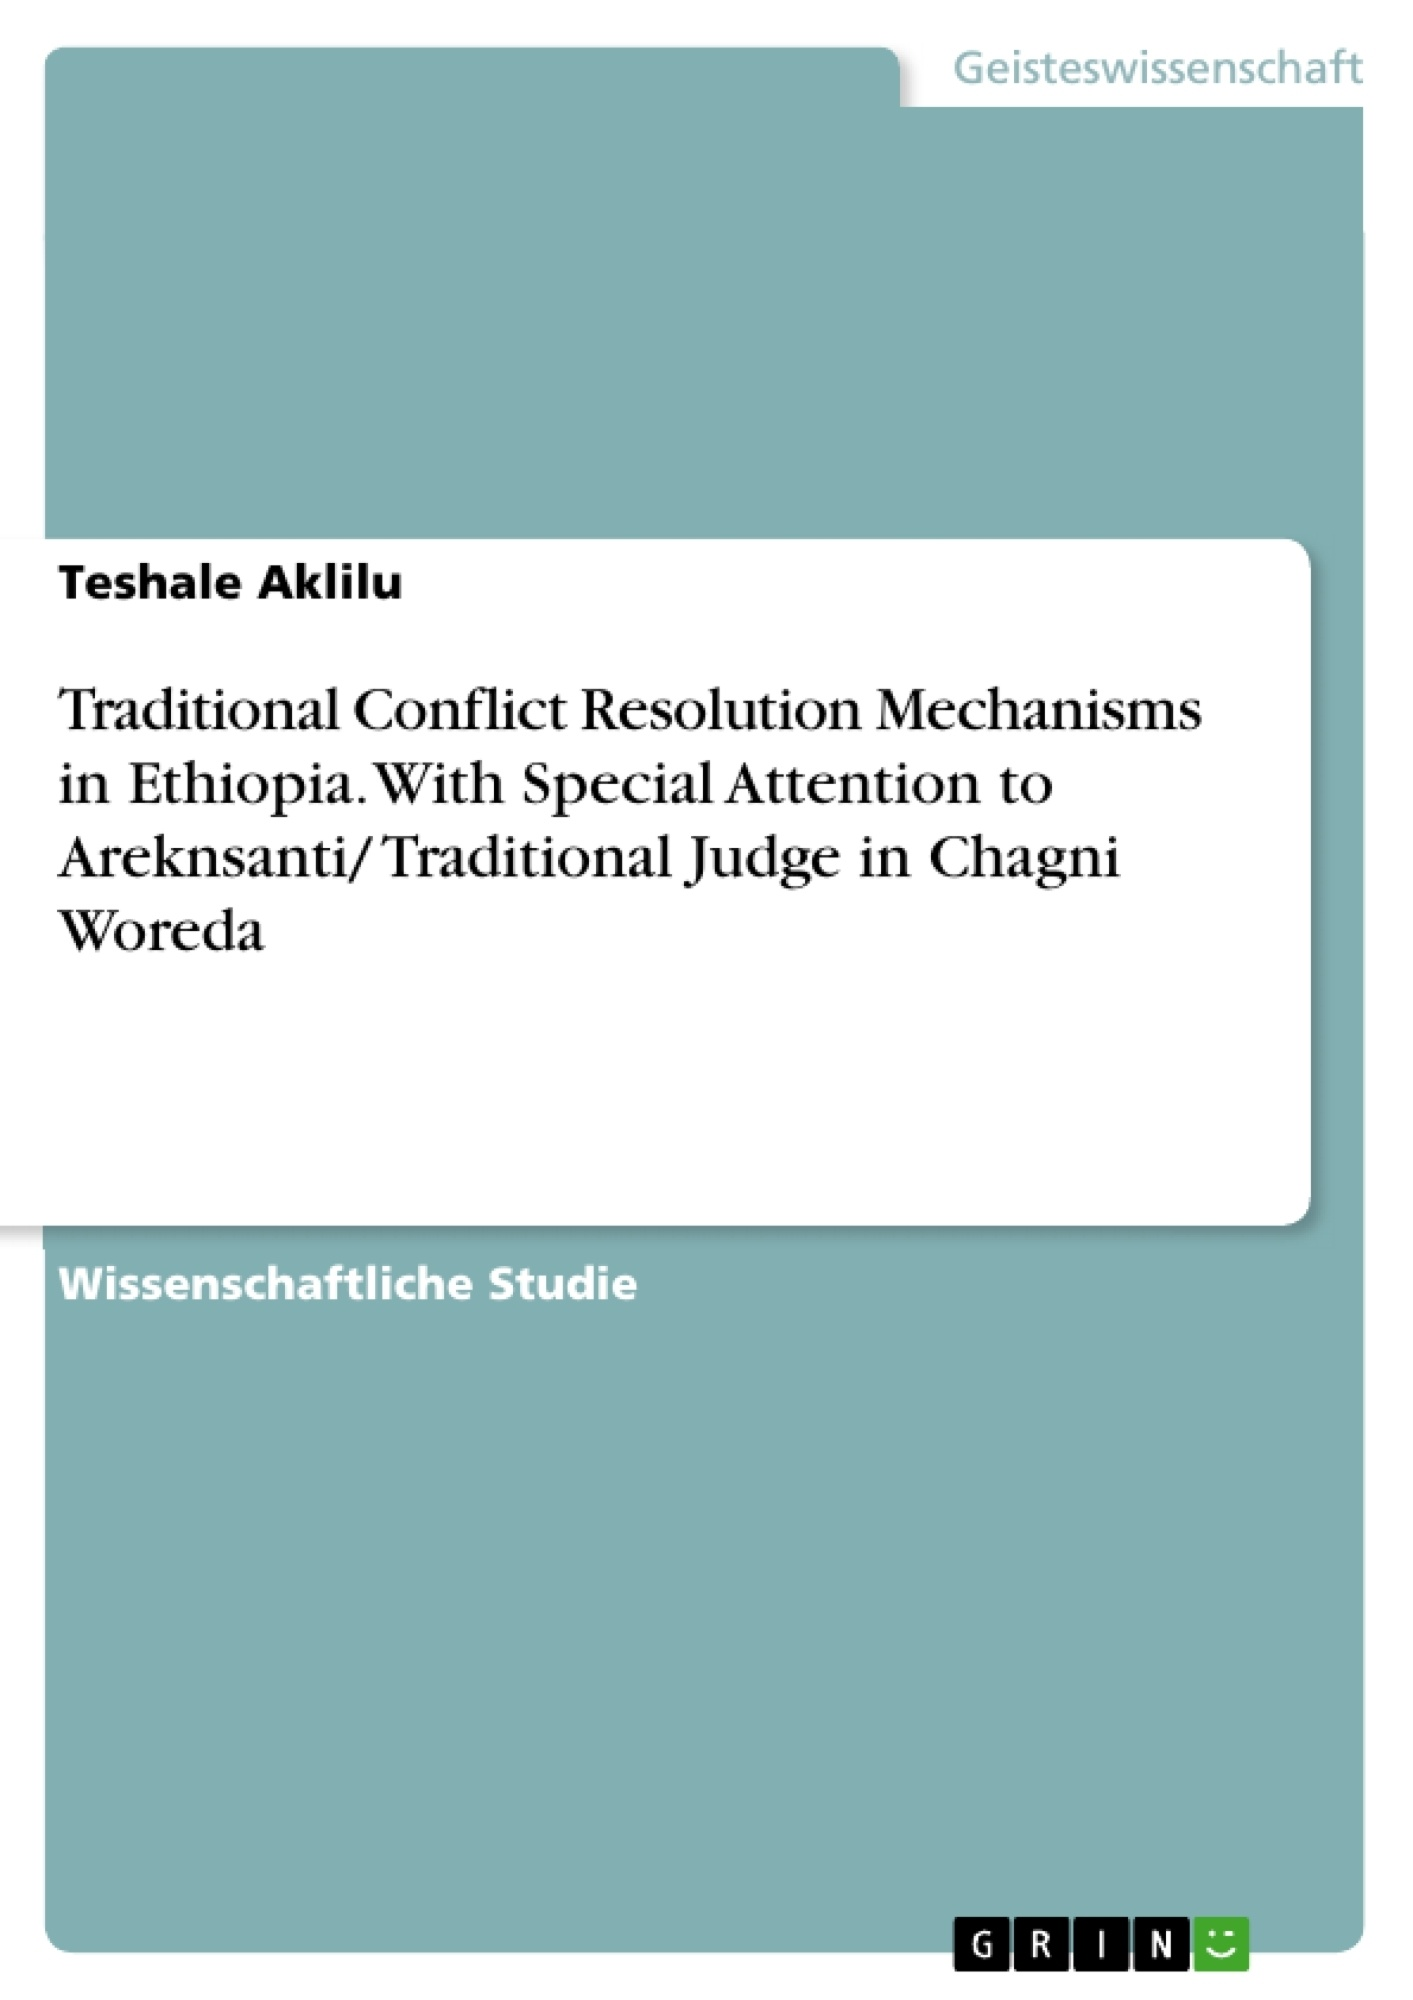 Titel: Traditional Conflict Resolution Mechanisms in Ethiopia. With Special Attention to Areknsanti/ Traditional Judge in Chagni Woreda